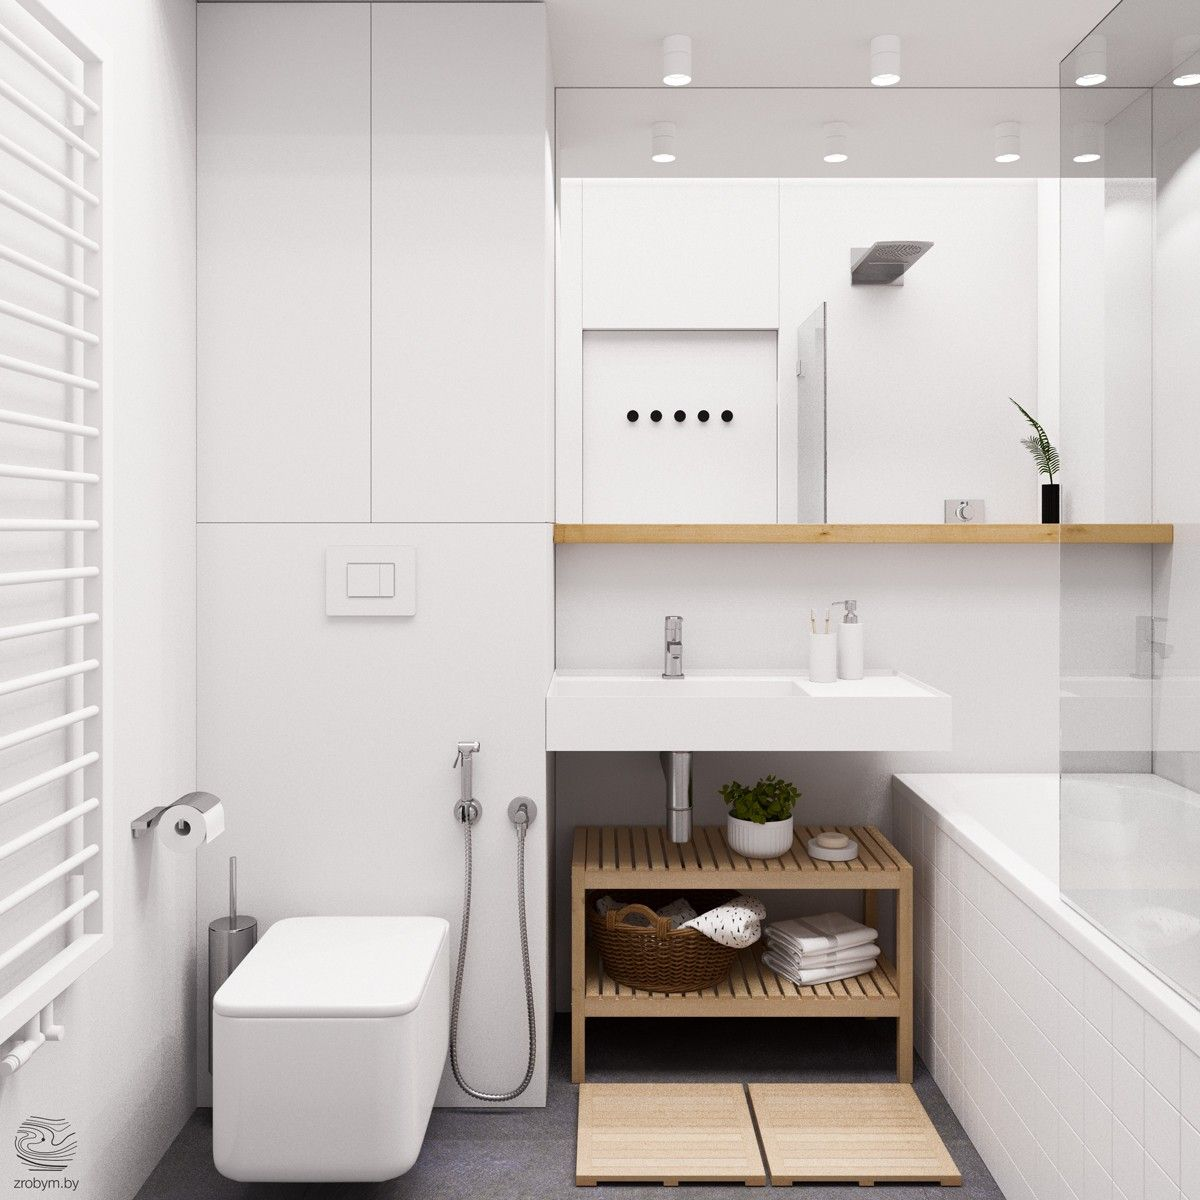 Mueble Encima W C Id Spaces Bathrooms Pinterest Ba Os # Muebles Para Wc